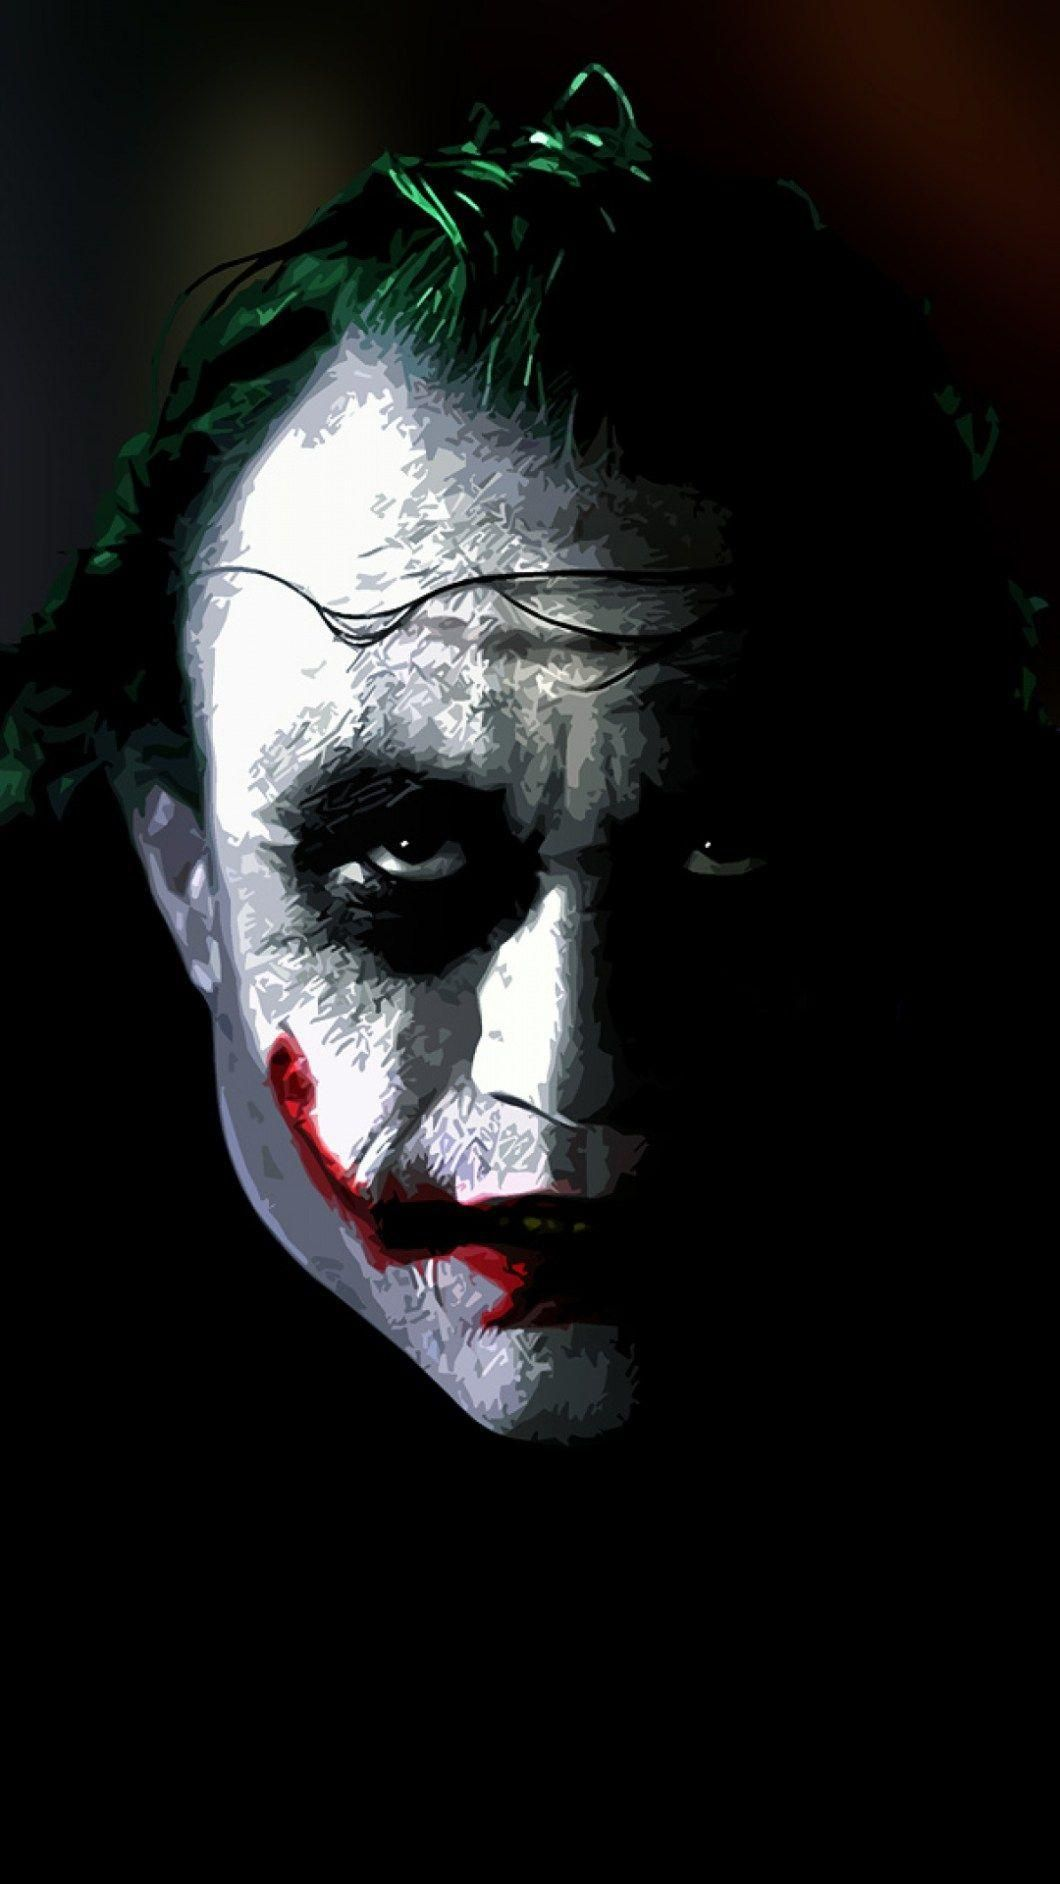 Here You Can Download Fantastic Collection Of Joker Hd Wallpapers These Images Are Free For Every Device Or G In 2021 Joker Wallpapers Joker Hd Wallpaper Joker Images Joker pics hd wallpaper 2021 download